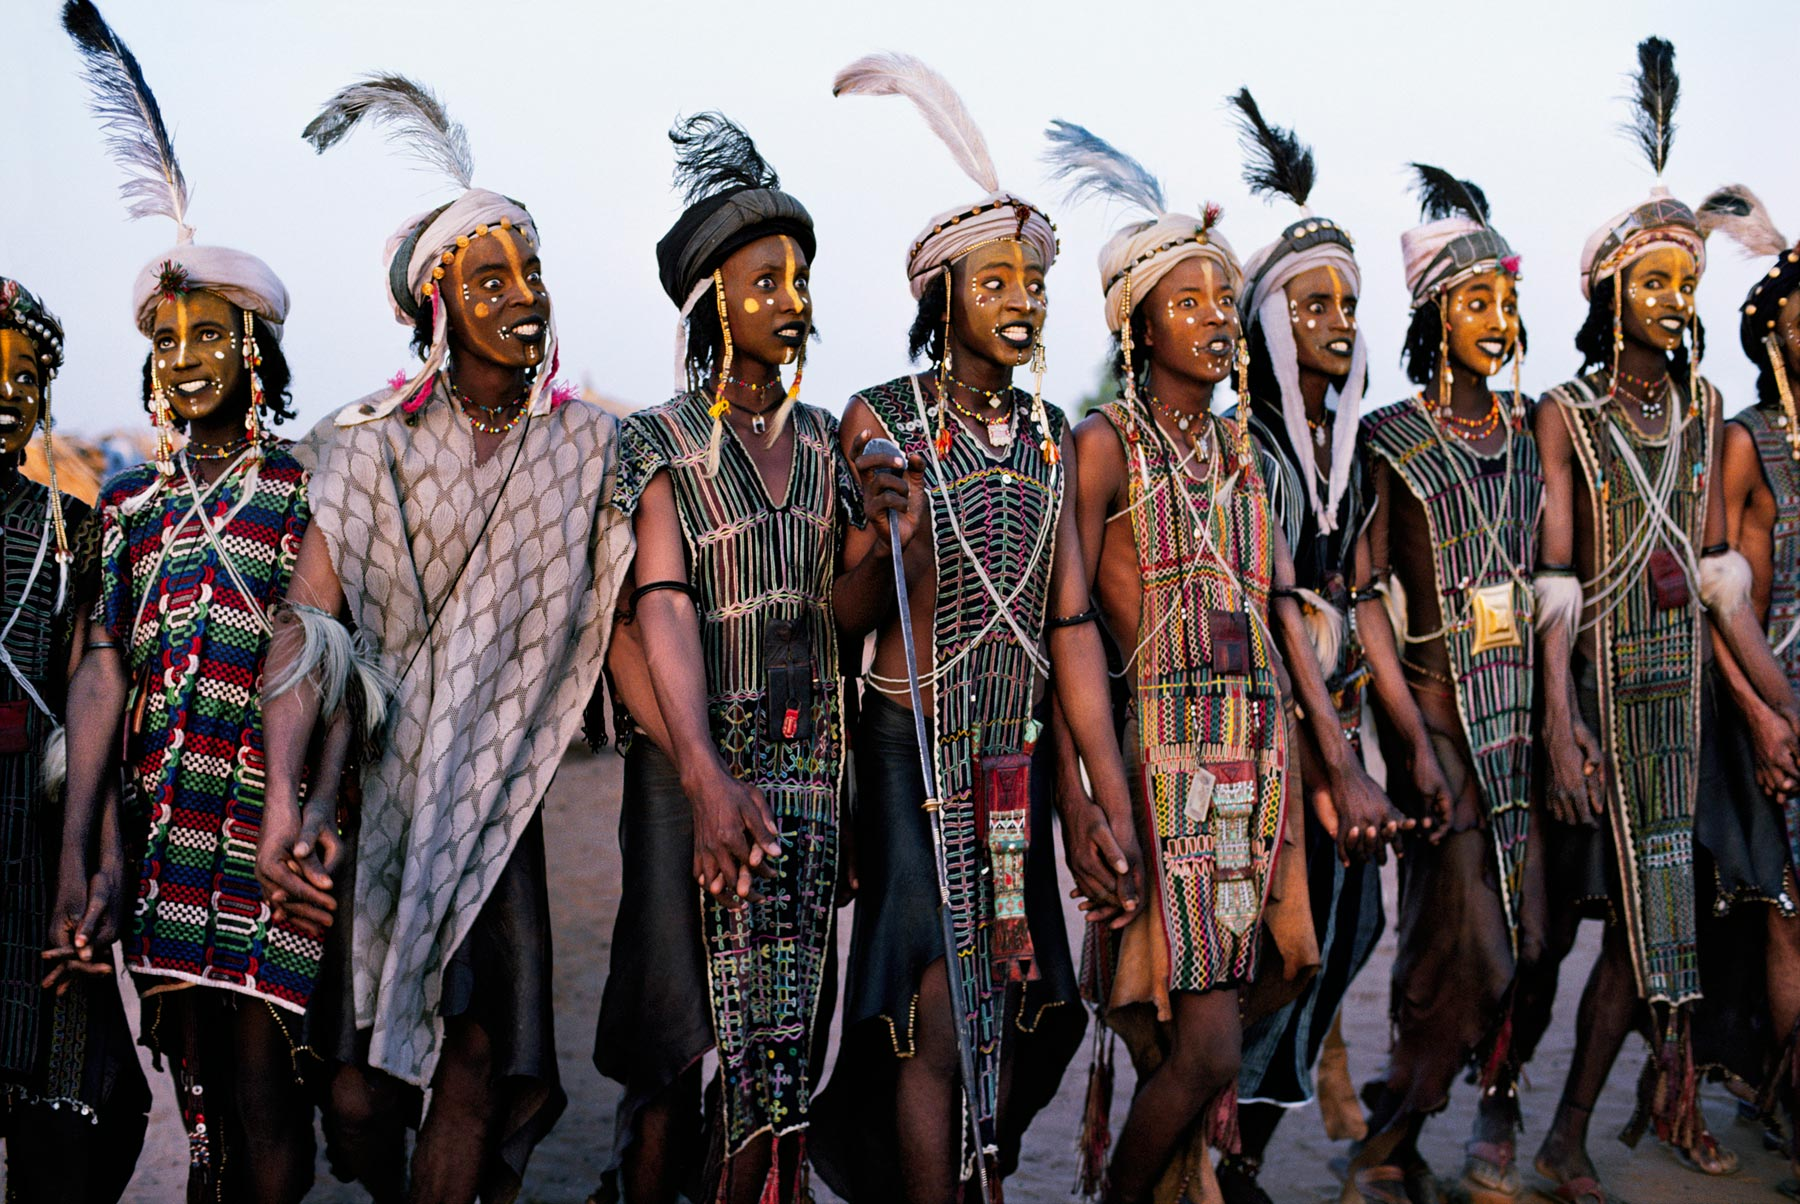 wodaabe tribe of niger's culture A majority of wodaabe live in niger, even though some wodaabe groups   fulani culture, due to their close attachment to herding and nomadism even   a sudanese tribe of cushitic origin, who came to africa in the early days of.